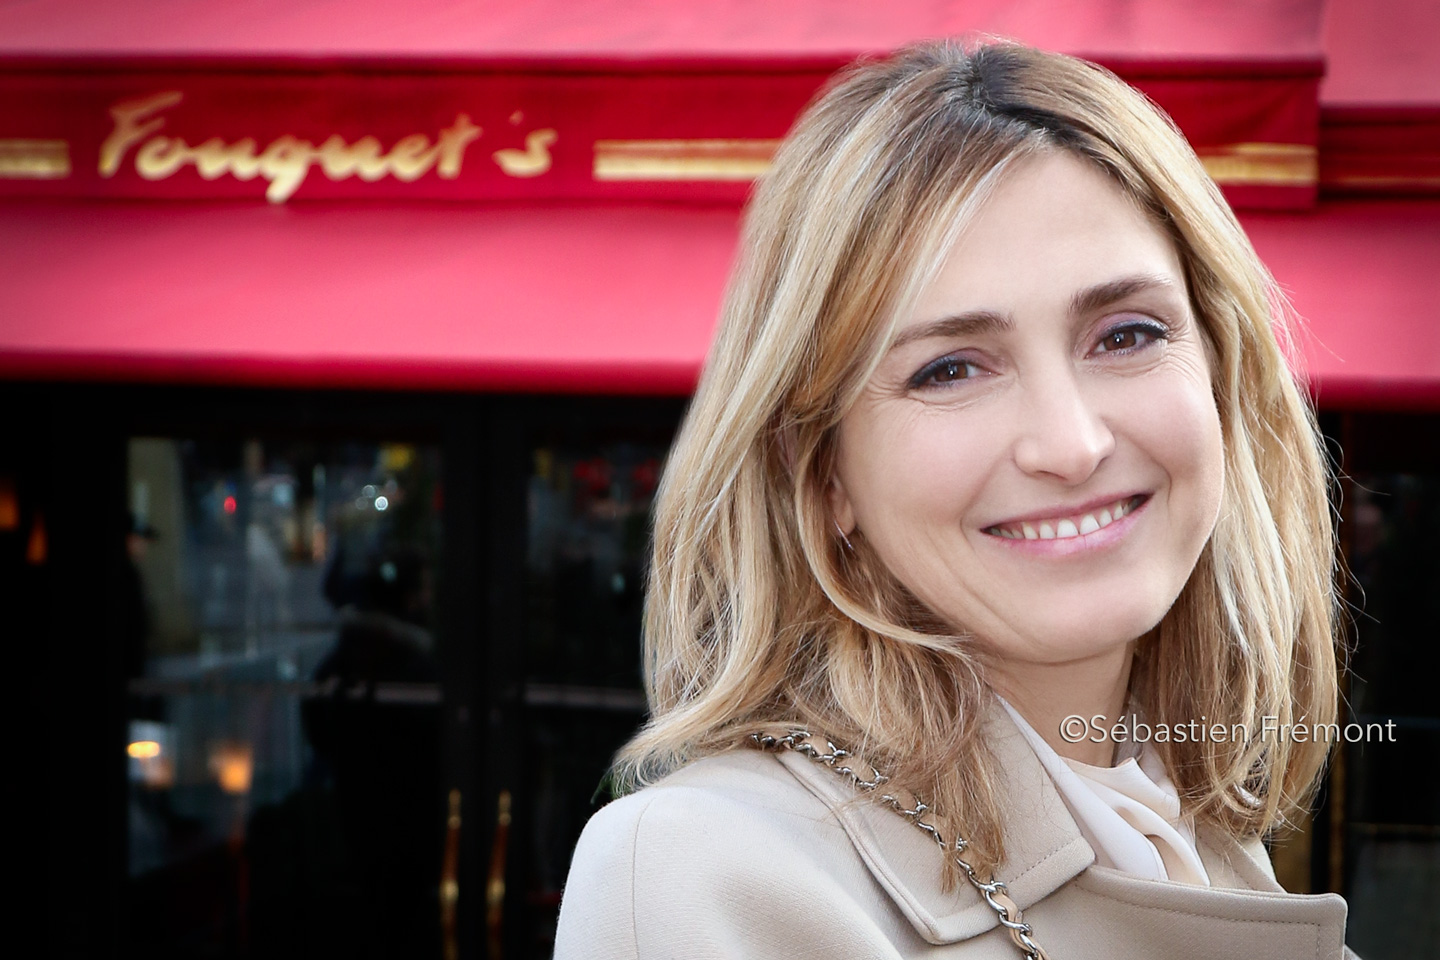 French Photographer Portrait Photography Julie Gayet / Fouquet's